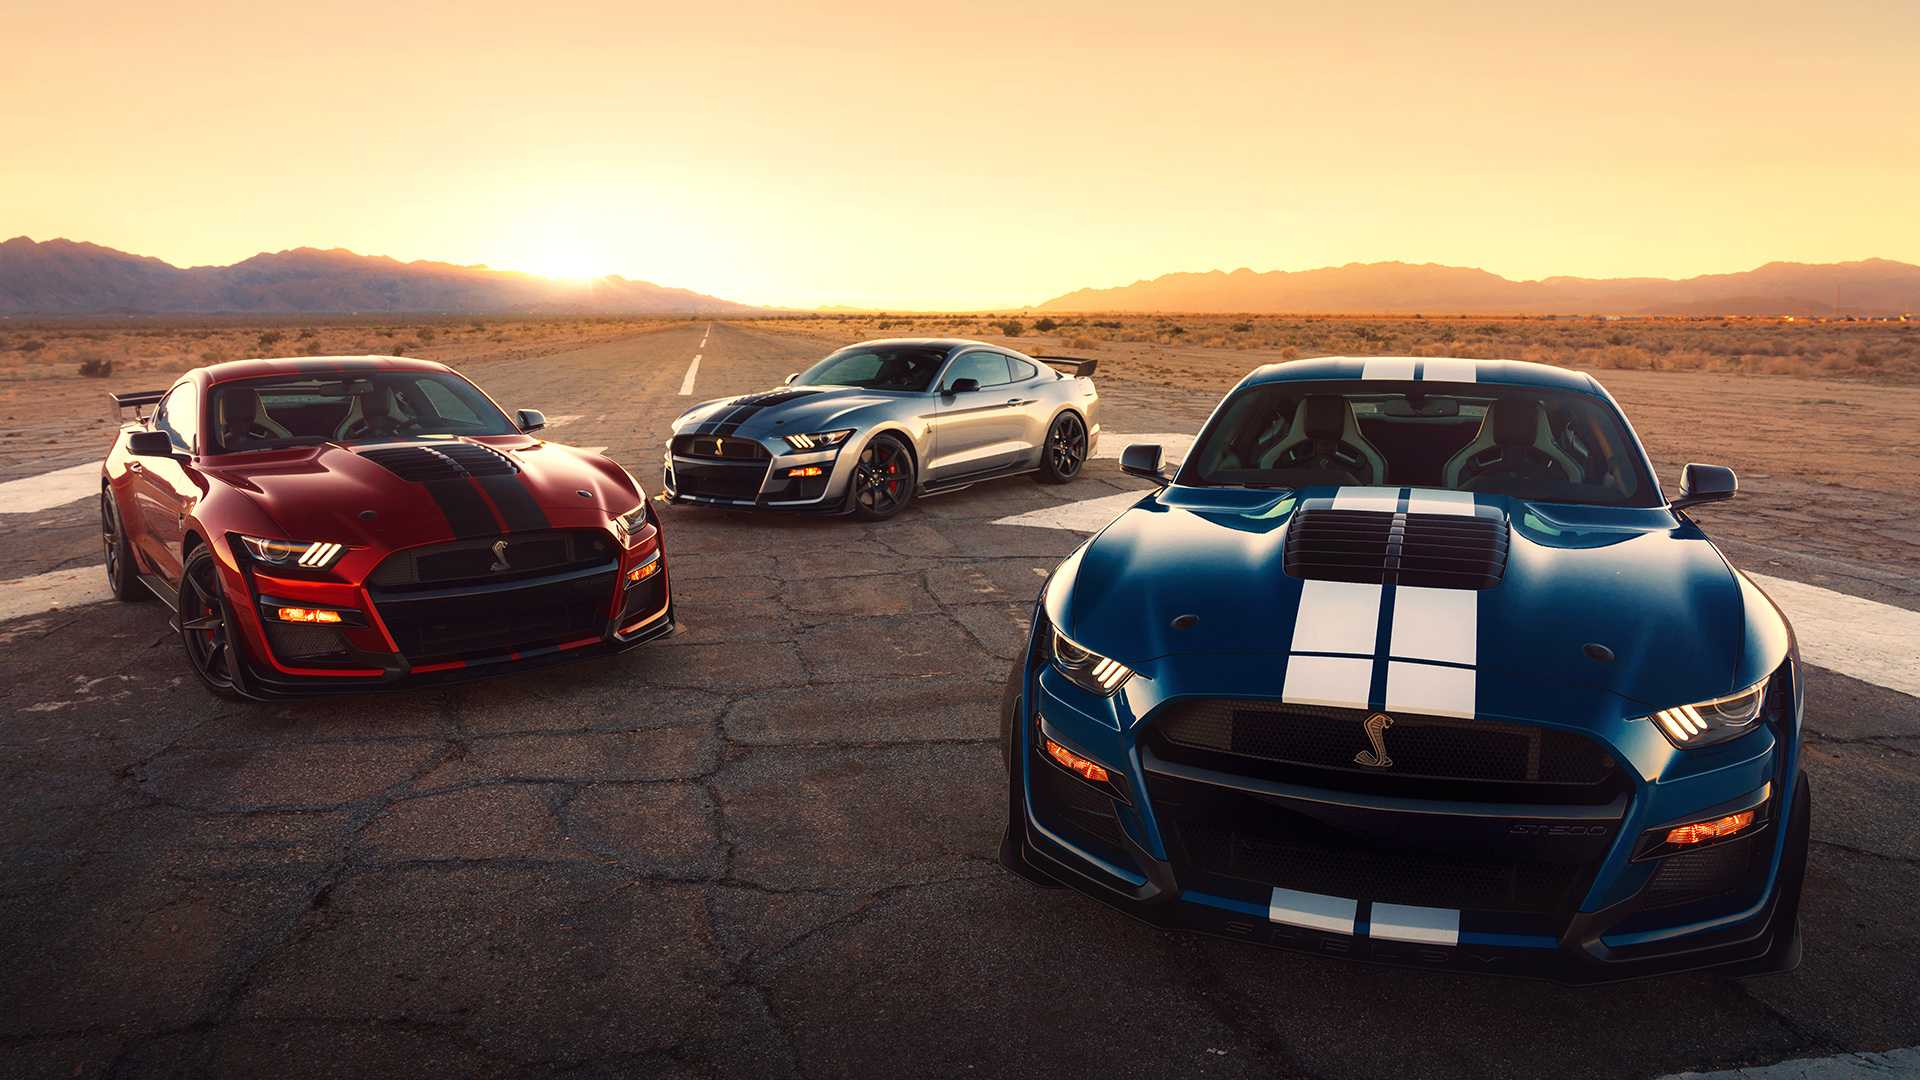 Ford Shelby GT500 – zver sa preko 700 konja (VIDEO I GALERIJA)